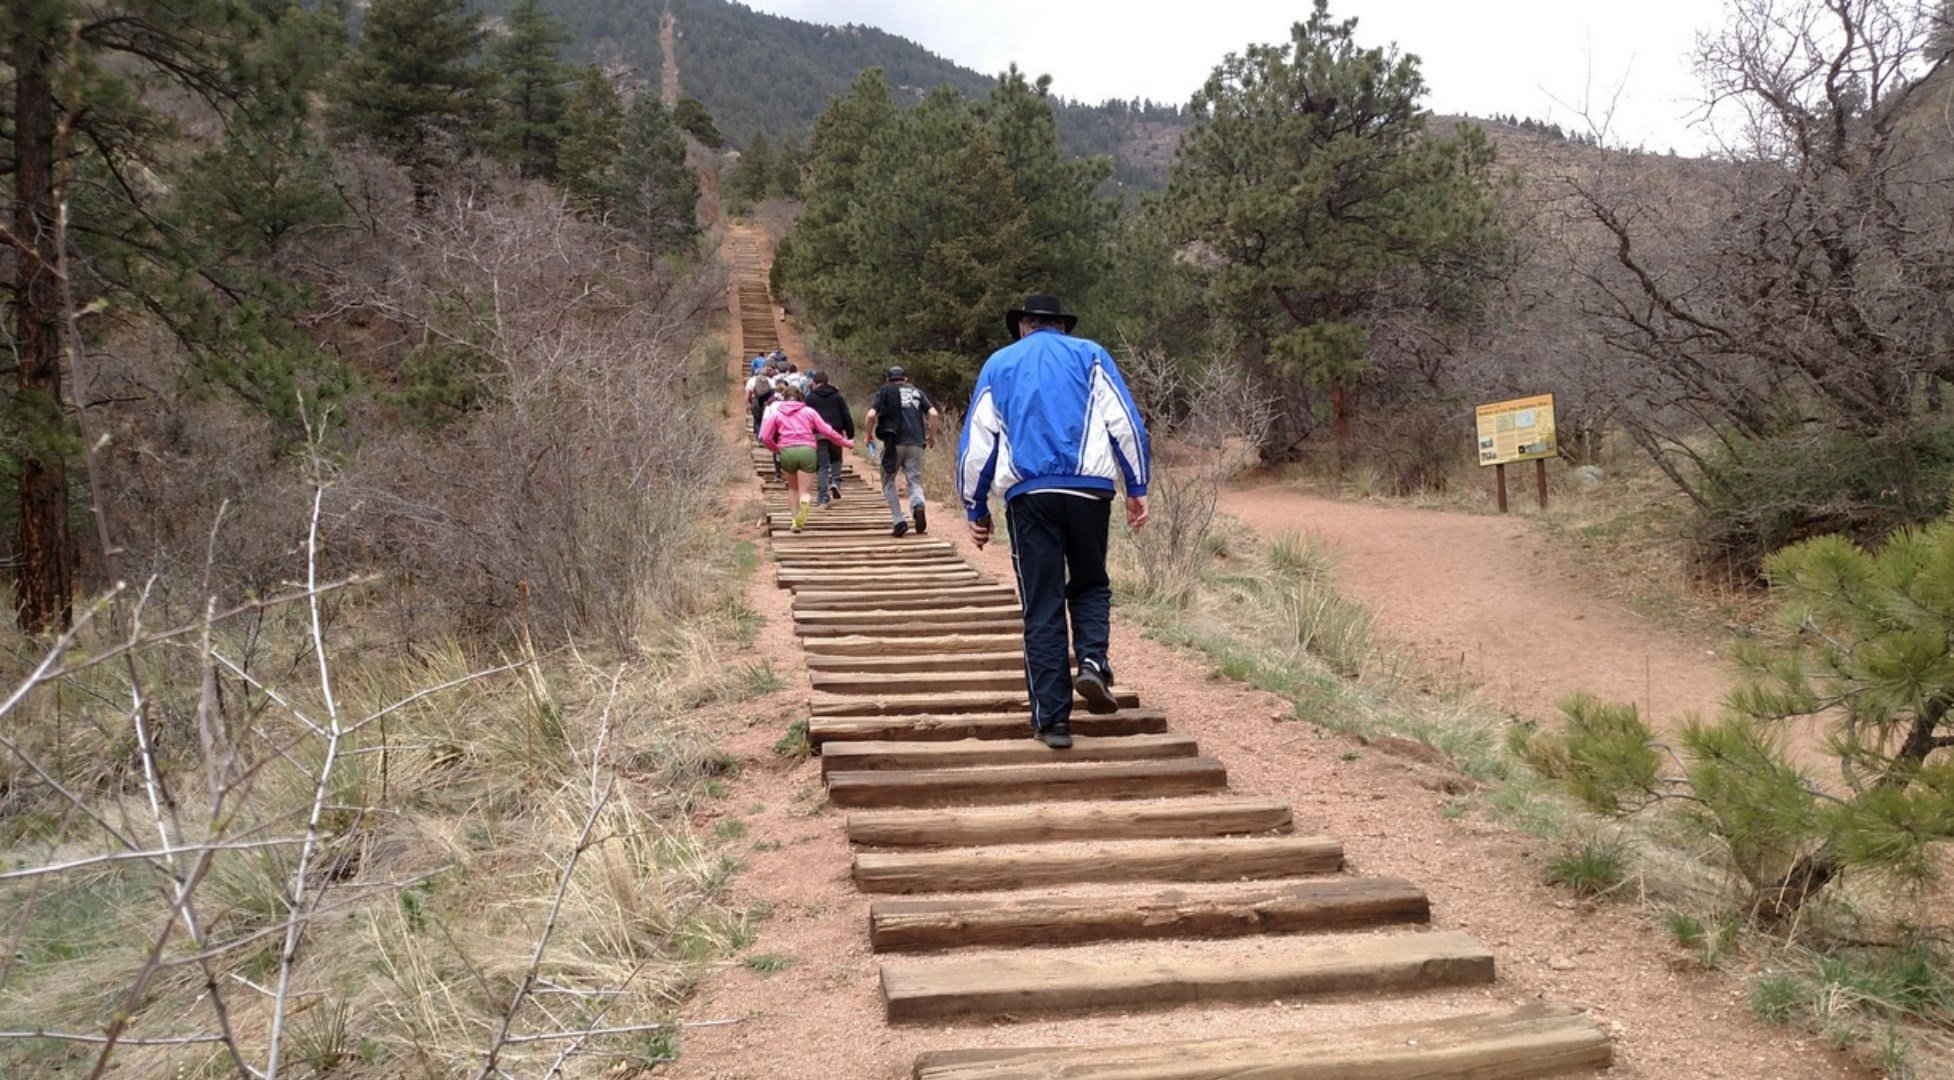 The Incline in Manitou Springs is a challenging ascent with rules on how to go up and down. (KOAA)